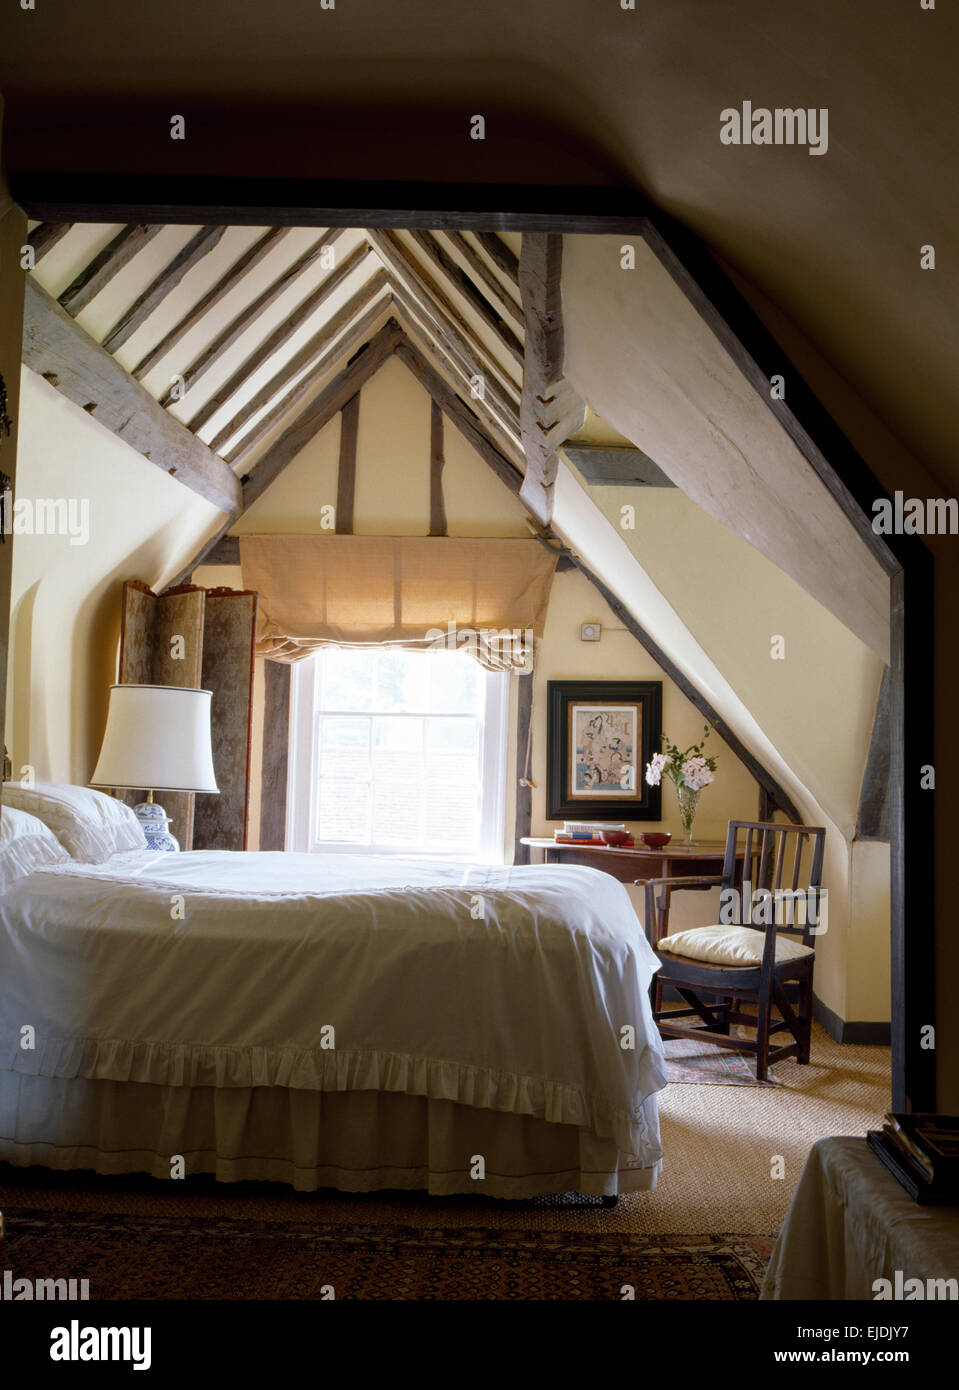 Loft conversion bedroom stockfotos loft conversion - Wasche im schlafzimmer trocknen ...